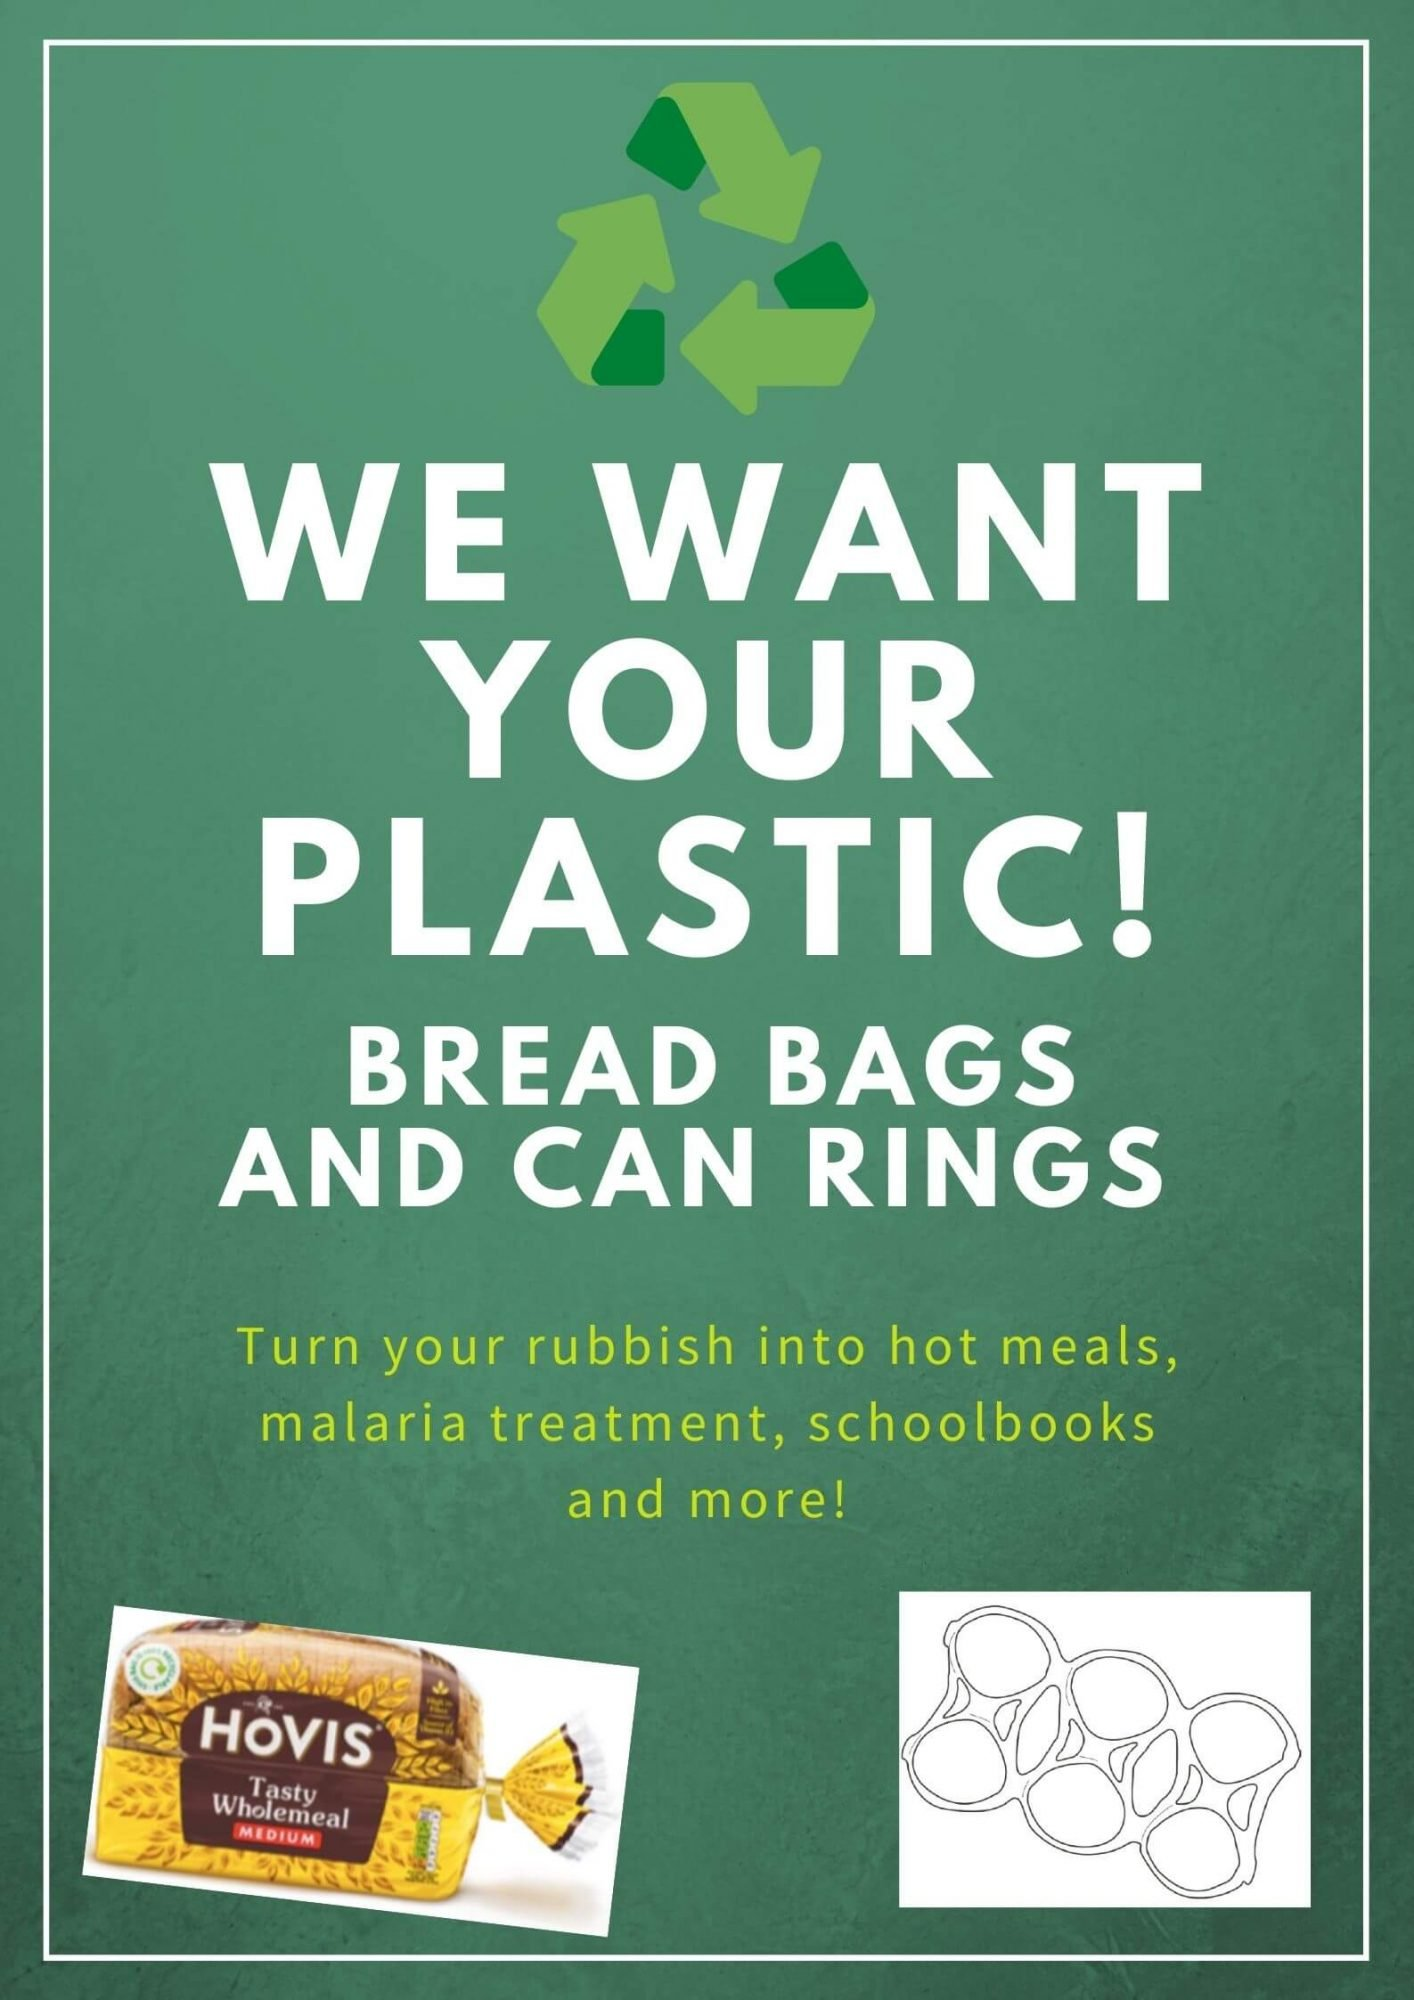 Graphic: We want your plastic (bread bags and can rings)